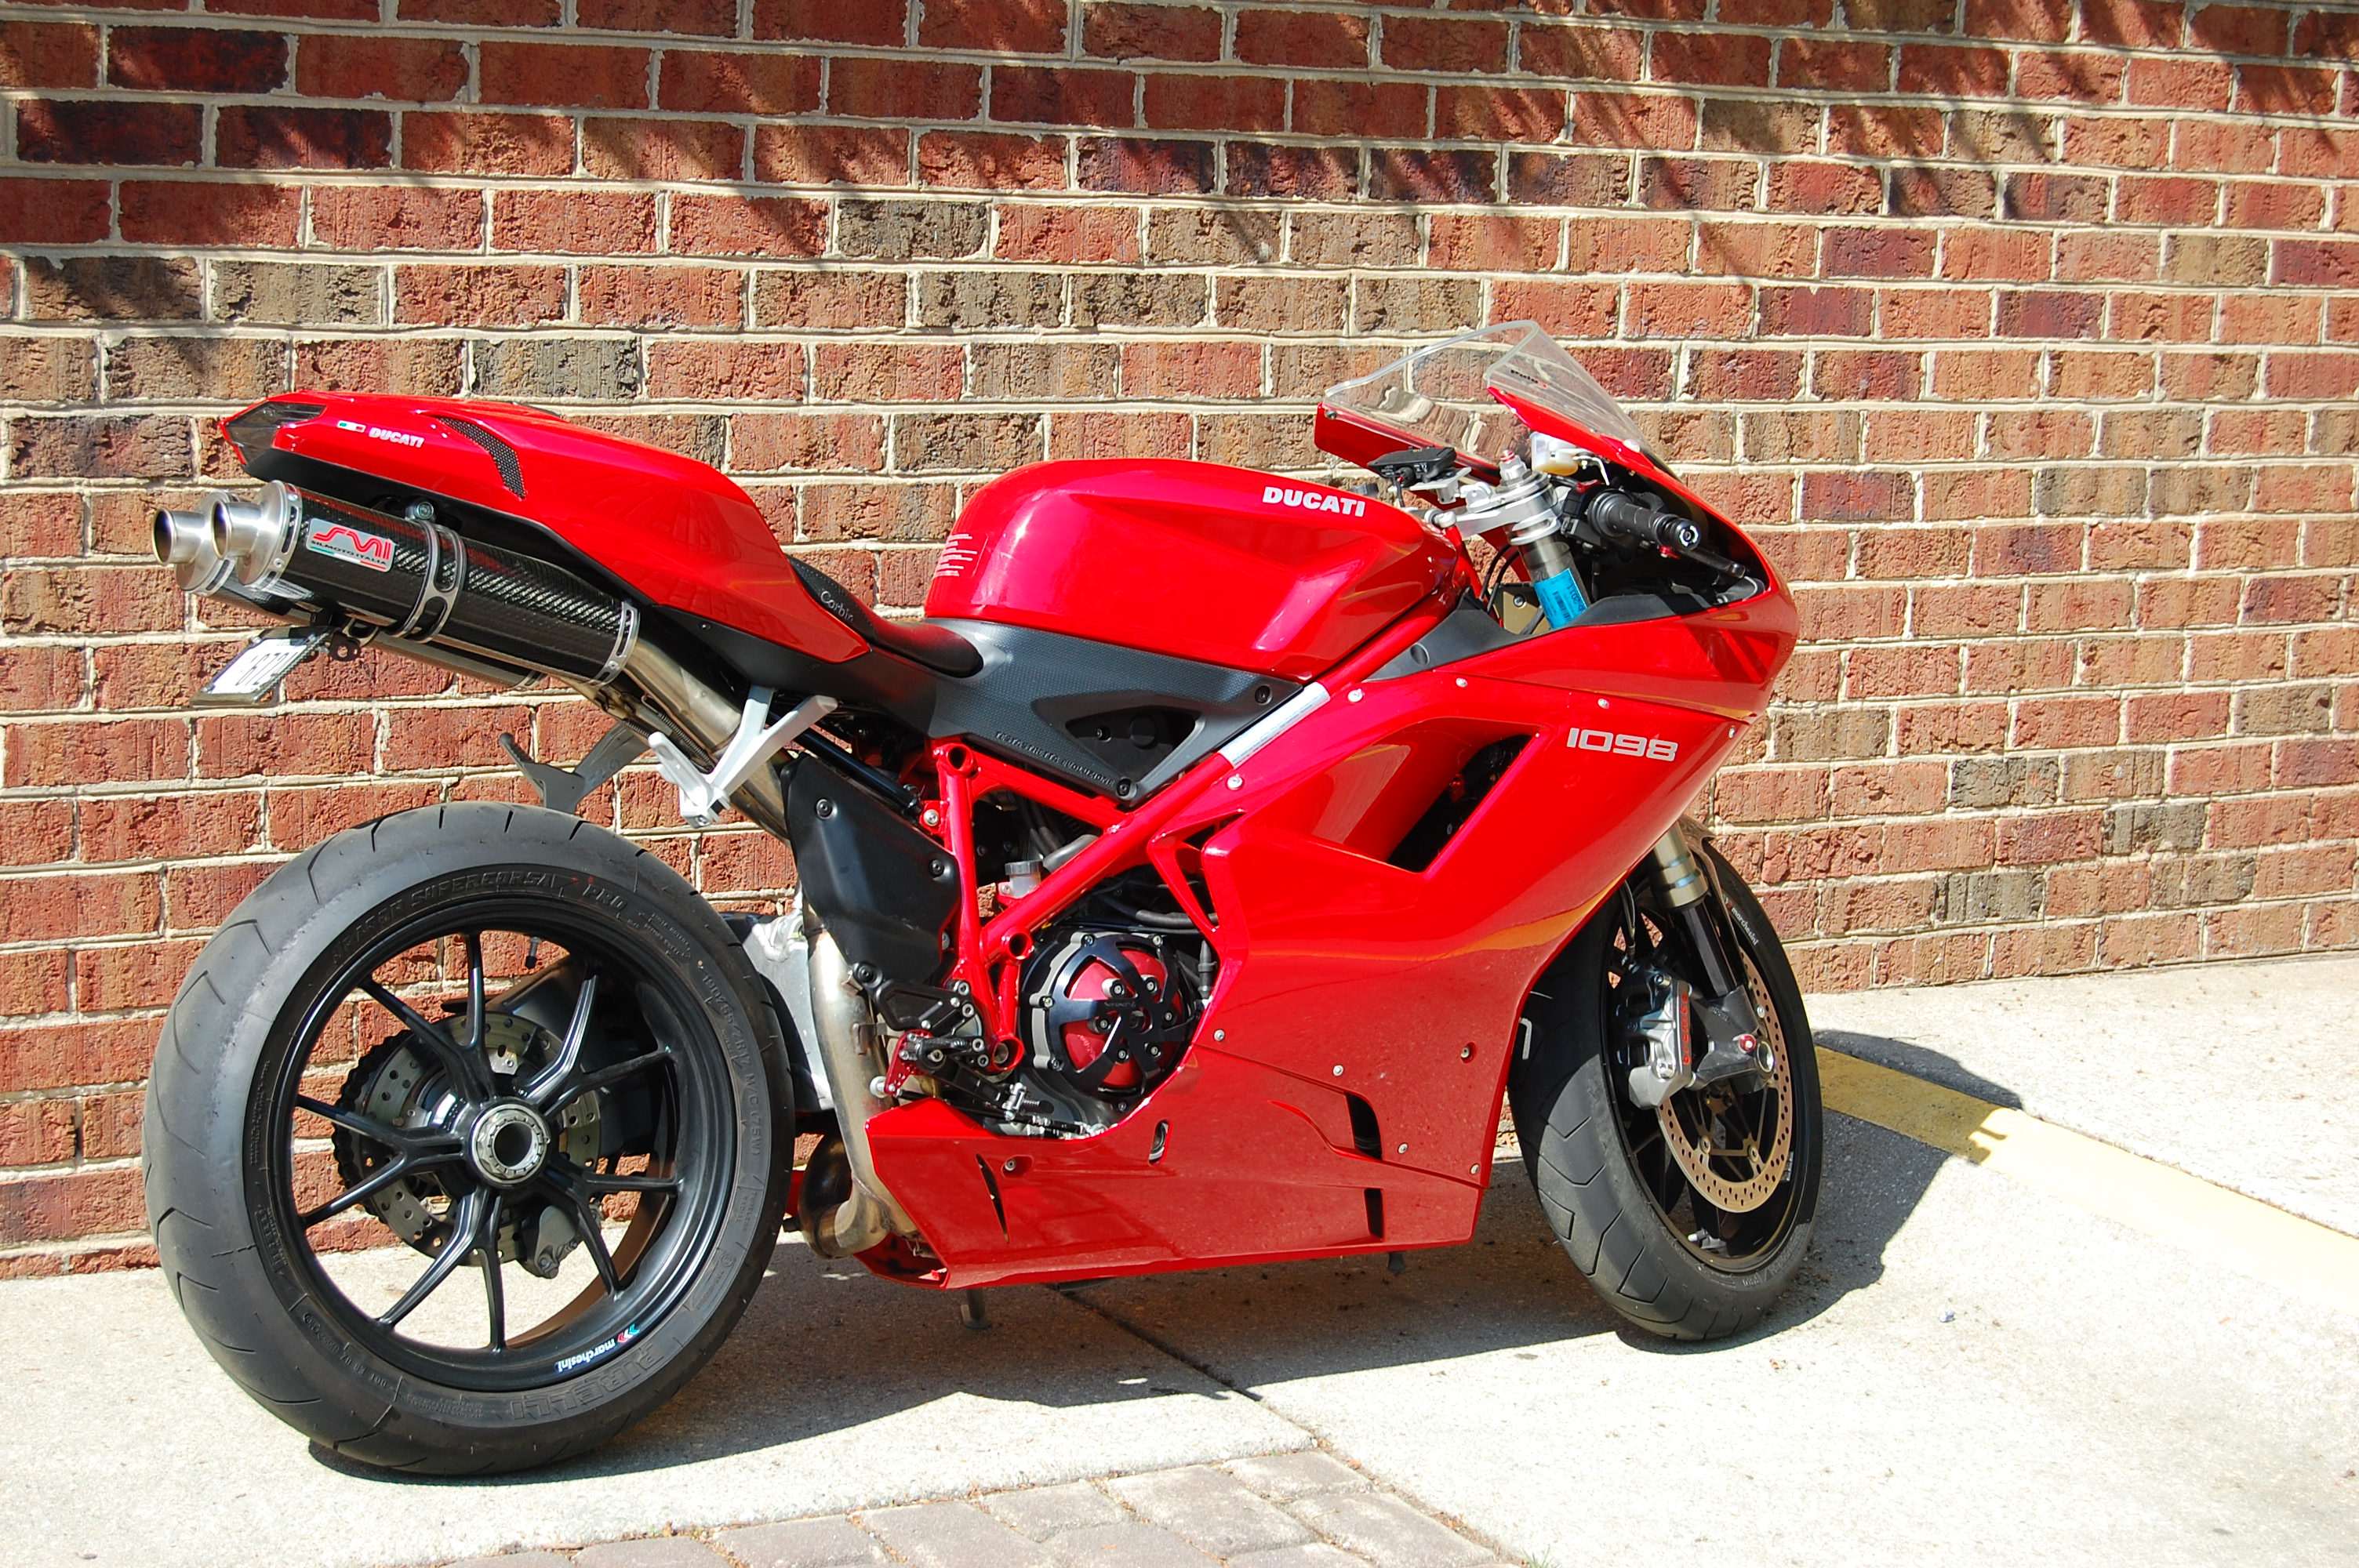 file ducati 1098 jpg wikipedia. Black Bedroom Furniture Sets. Home Design Ideas